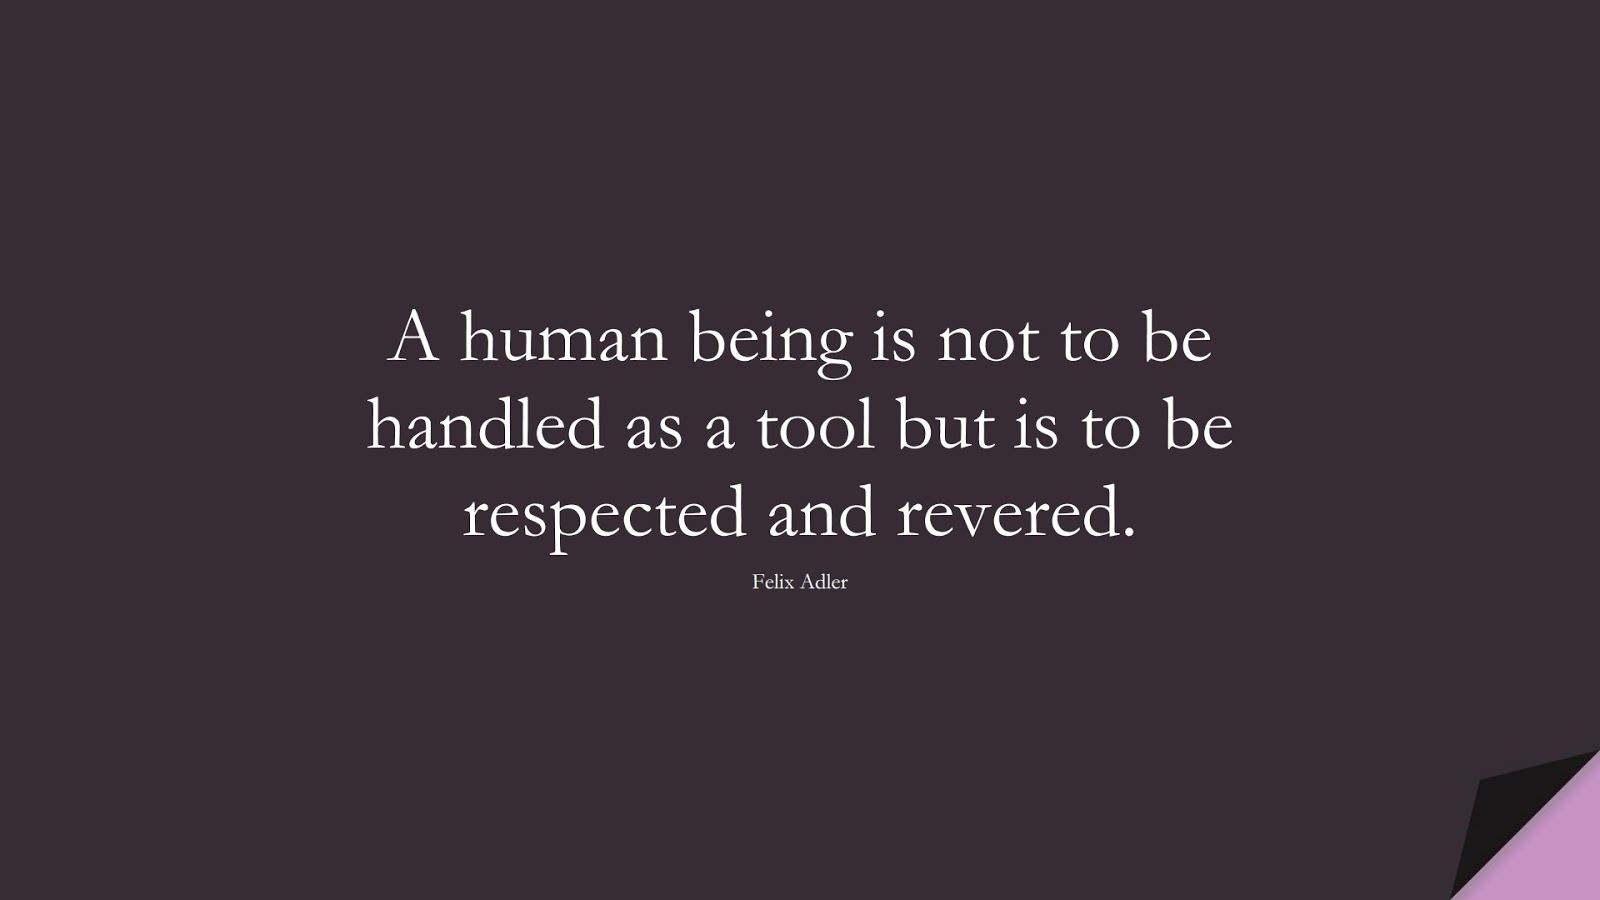 A human being is not to be handled as a tool but is to be respected and revered. (Felix Adler);  #HumanityQuotes